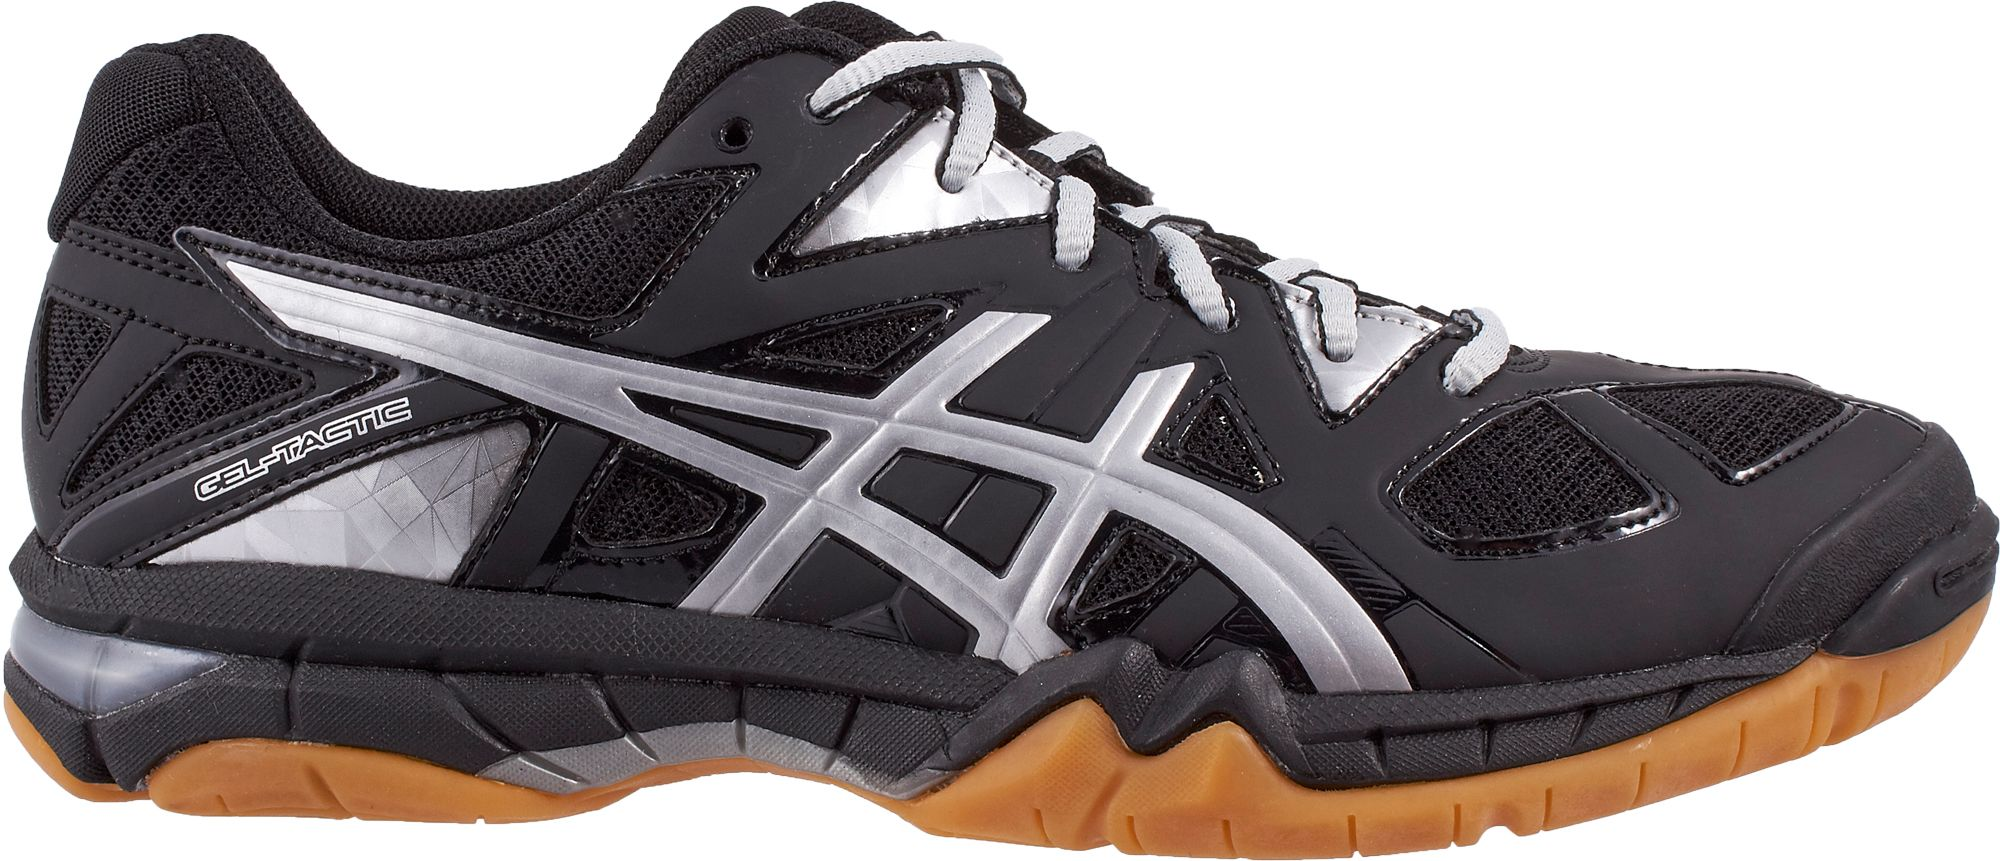 3cc34e4ad7634 ASICS Women's GEL-Tactic Volleyball Shoes